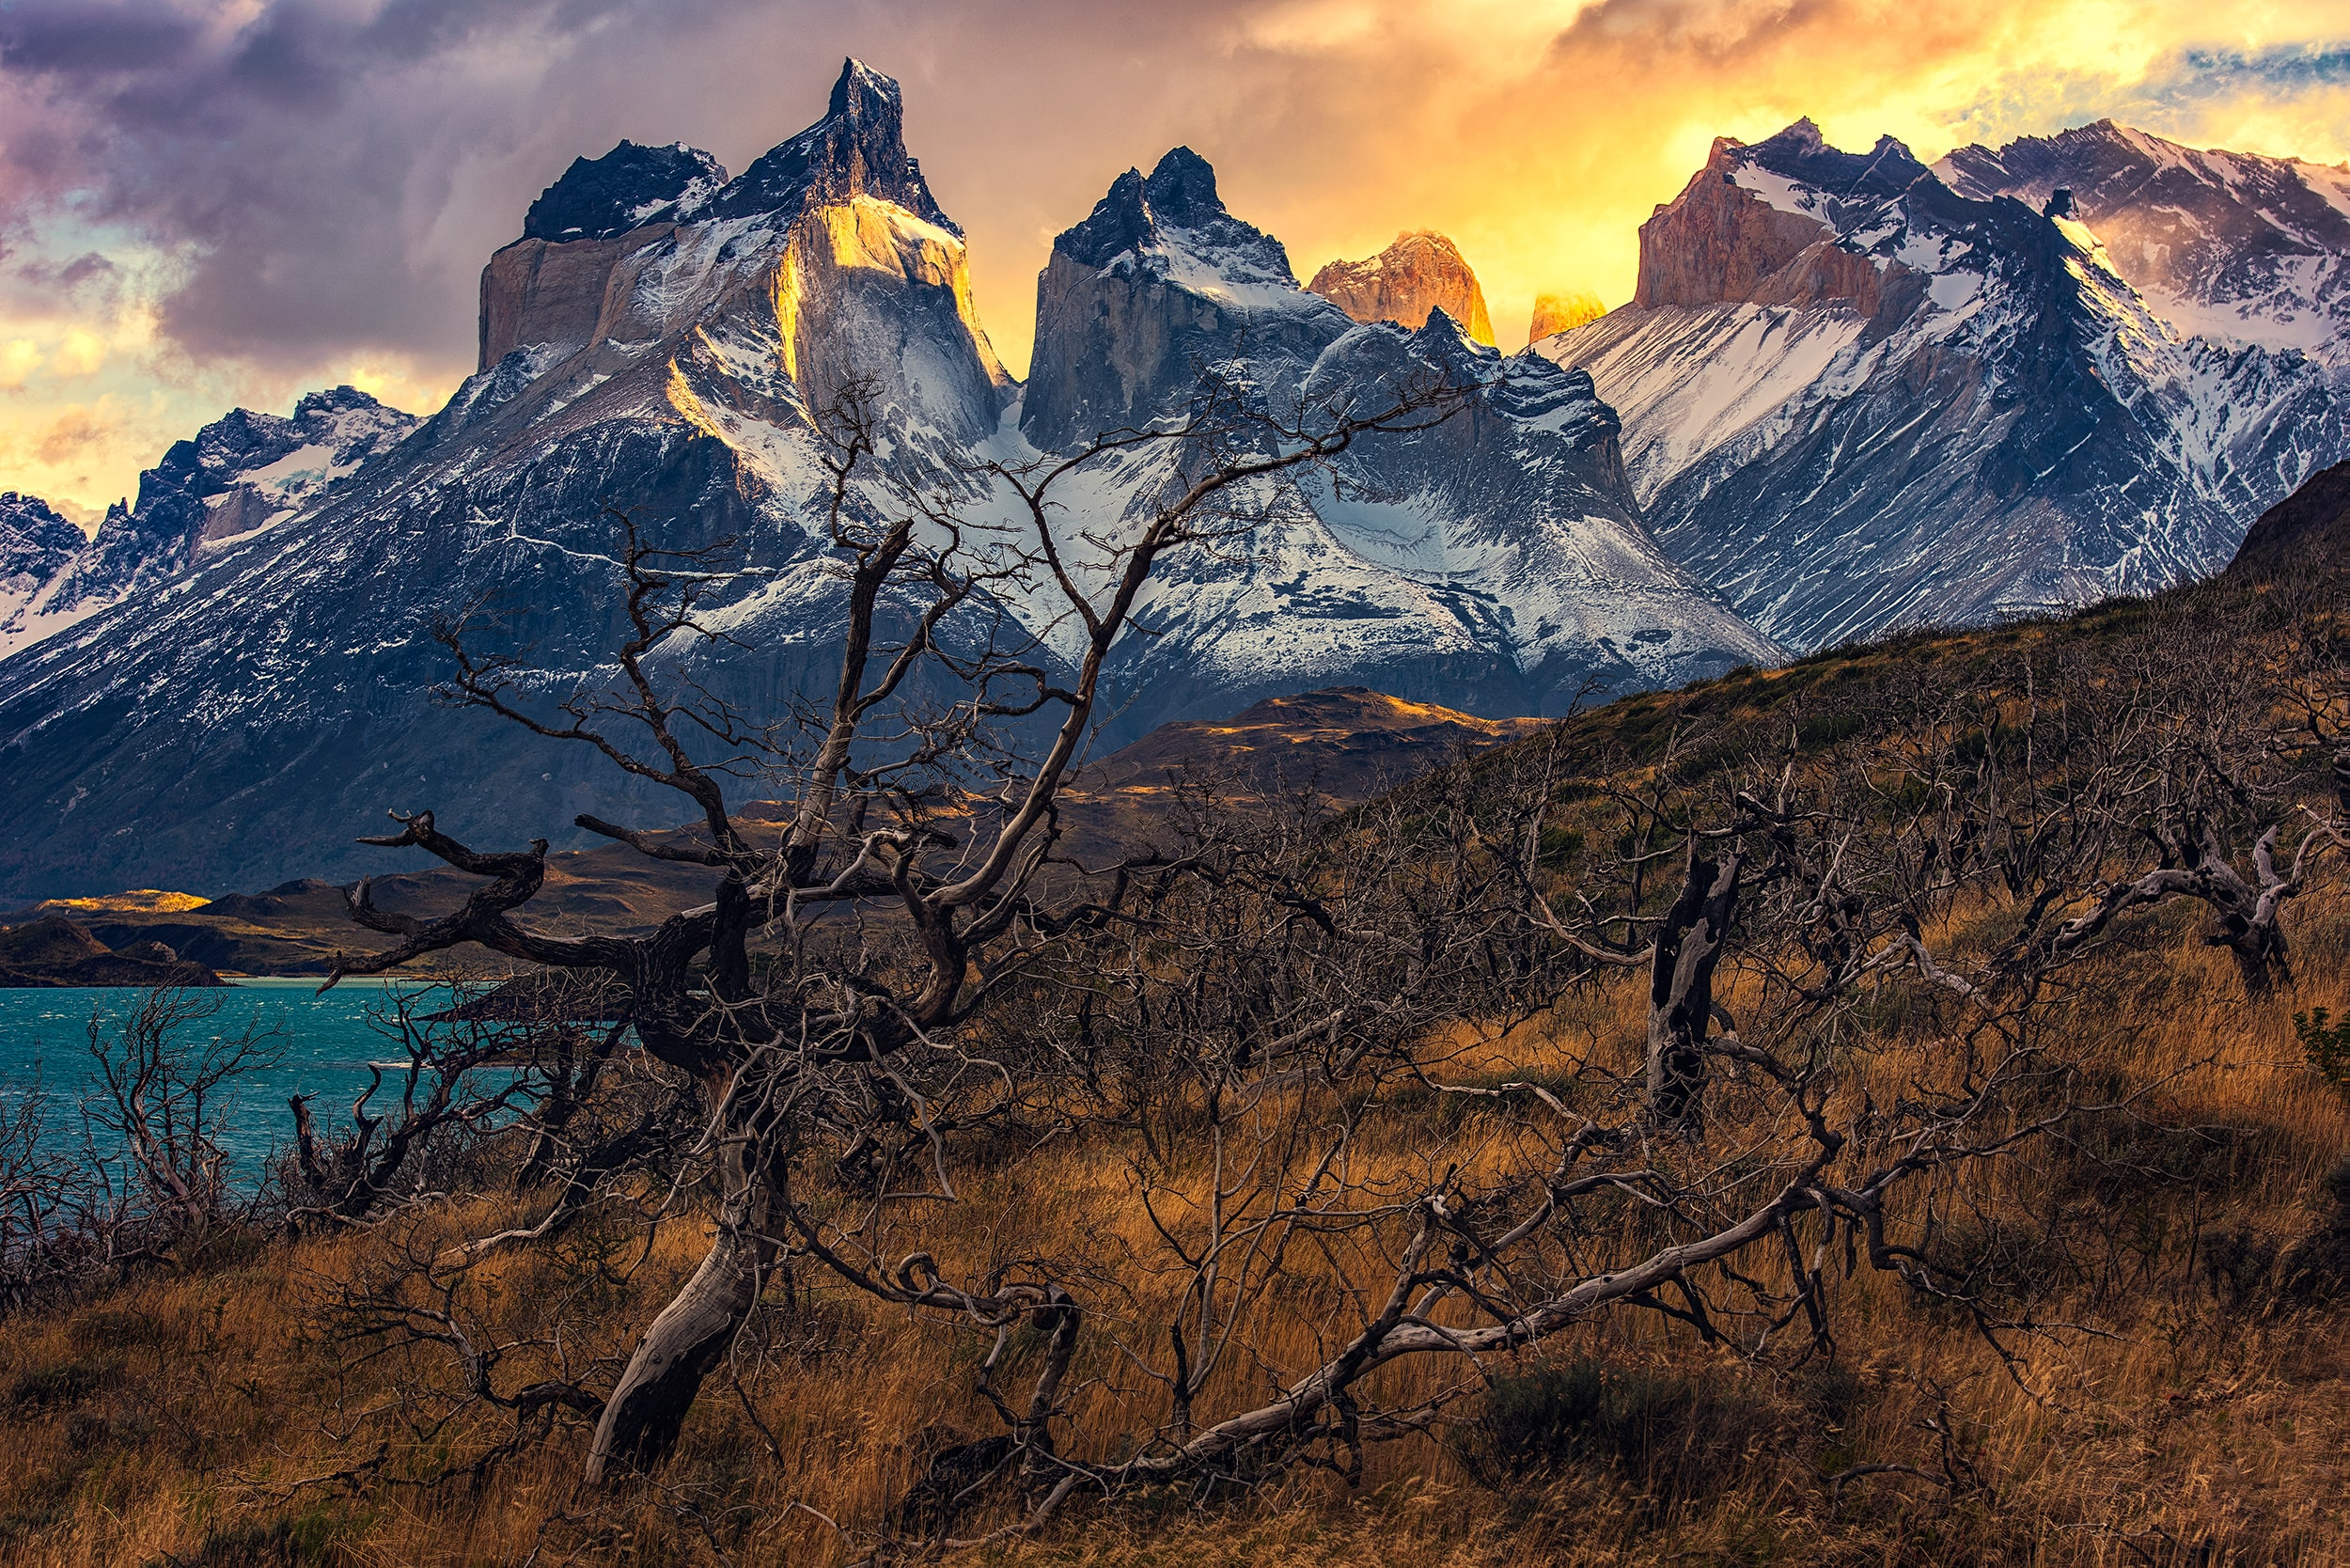 dead trees park in chile,patagonia